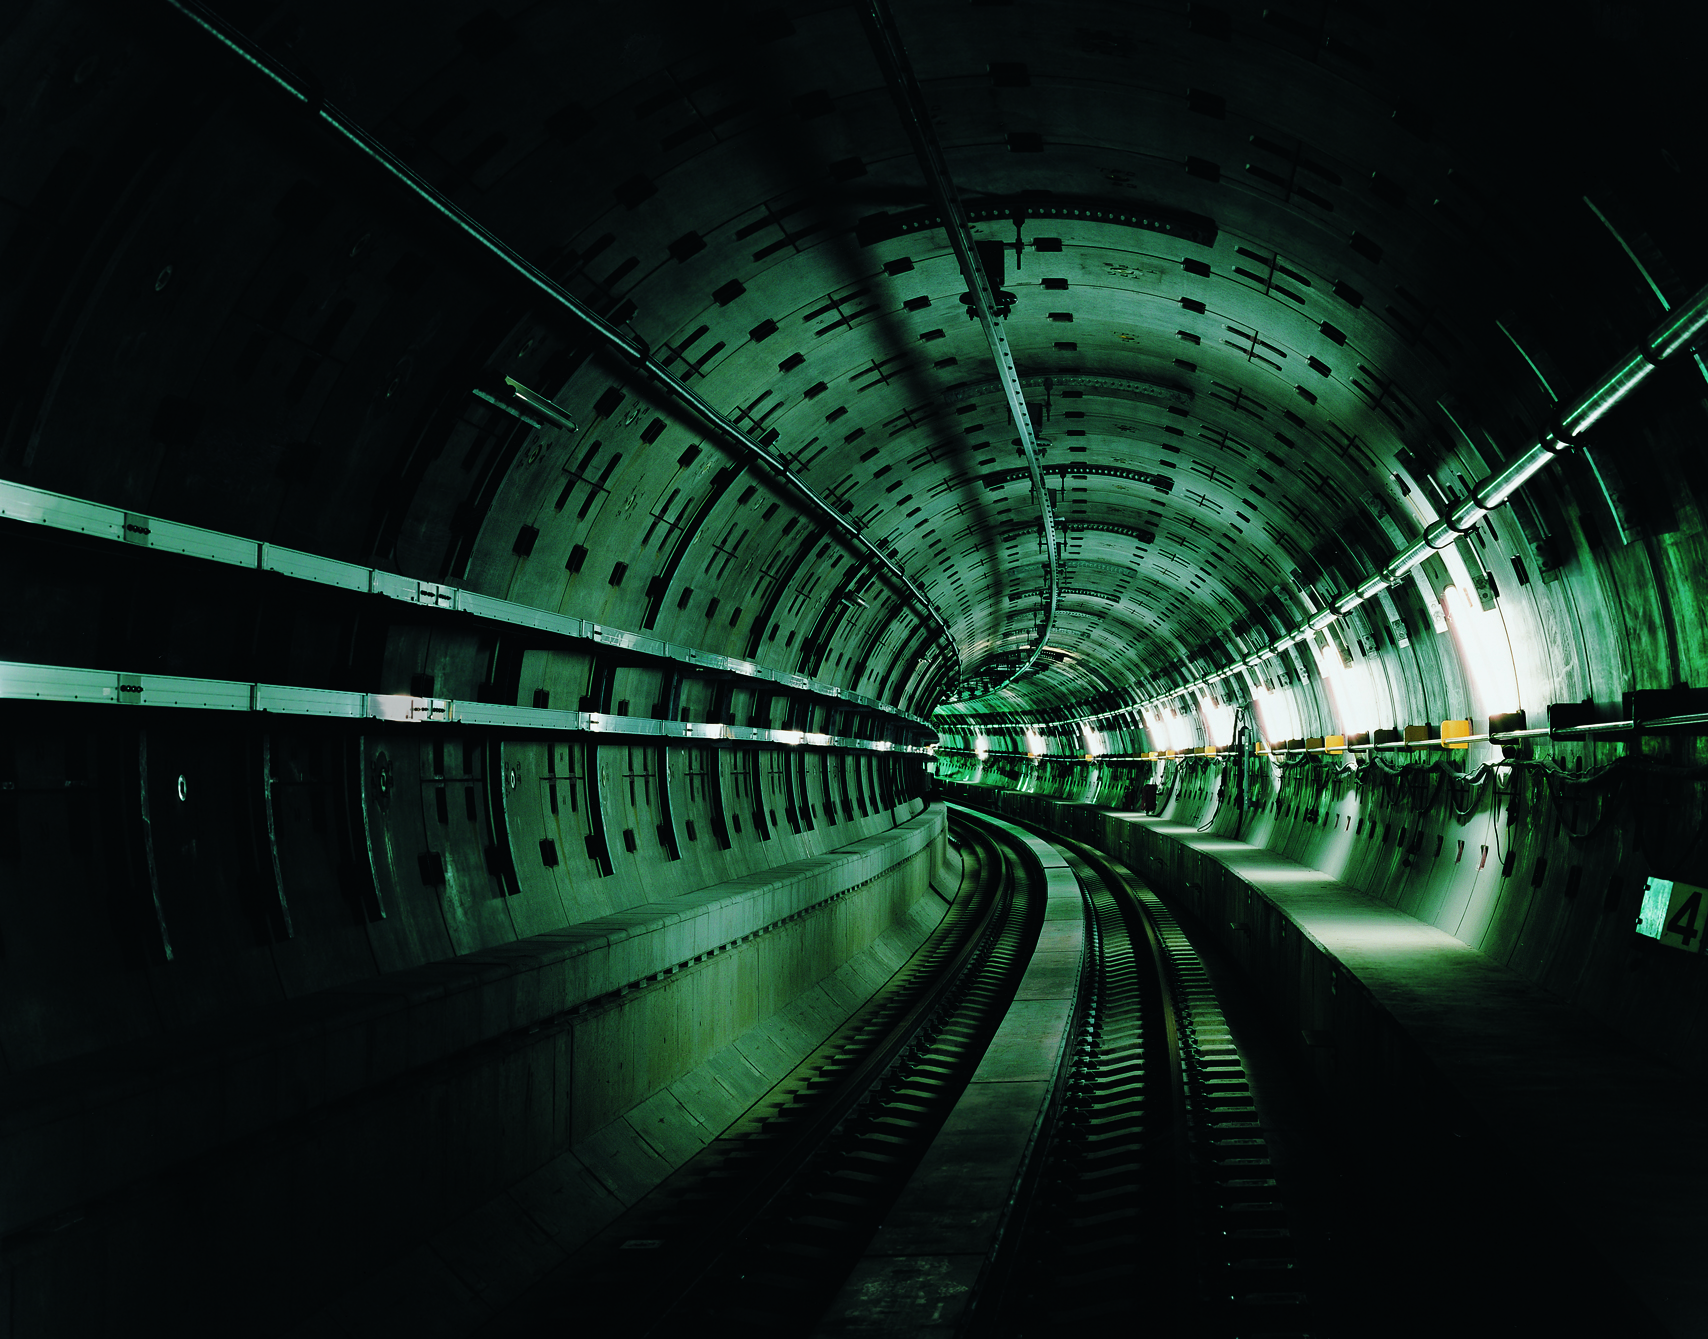 View looking down a curved subway tunnel, mostly darkish and dark